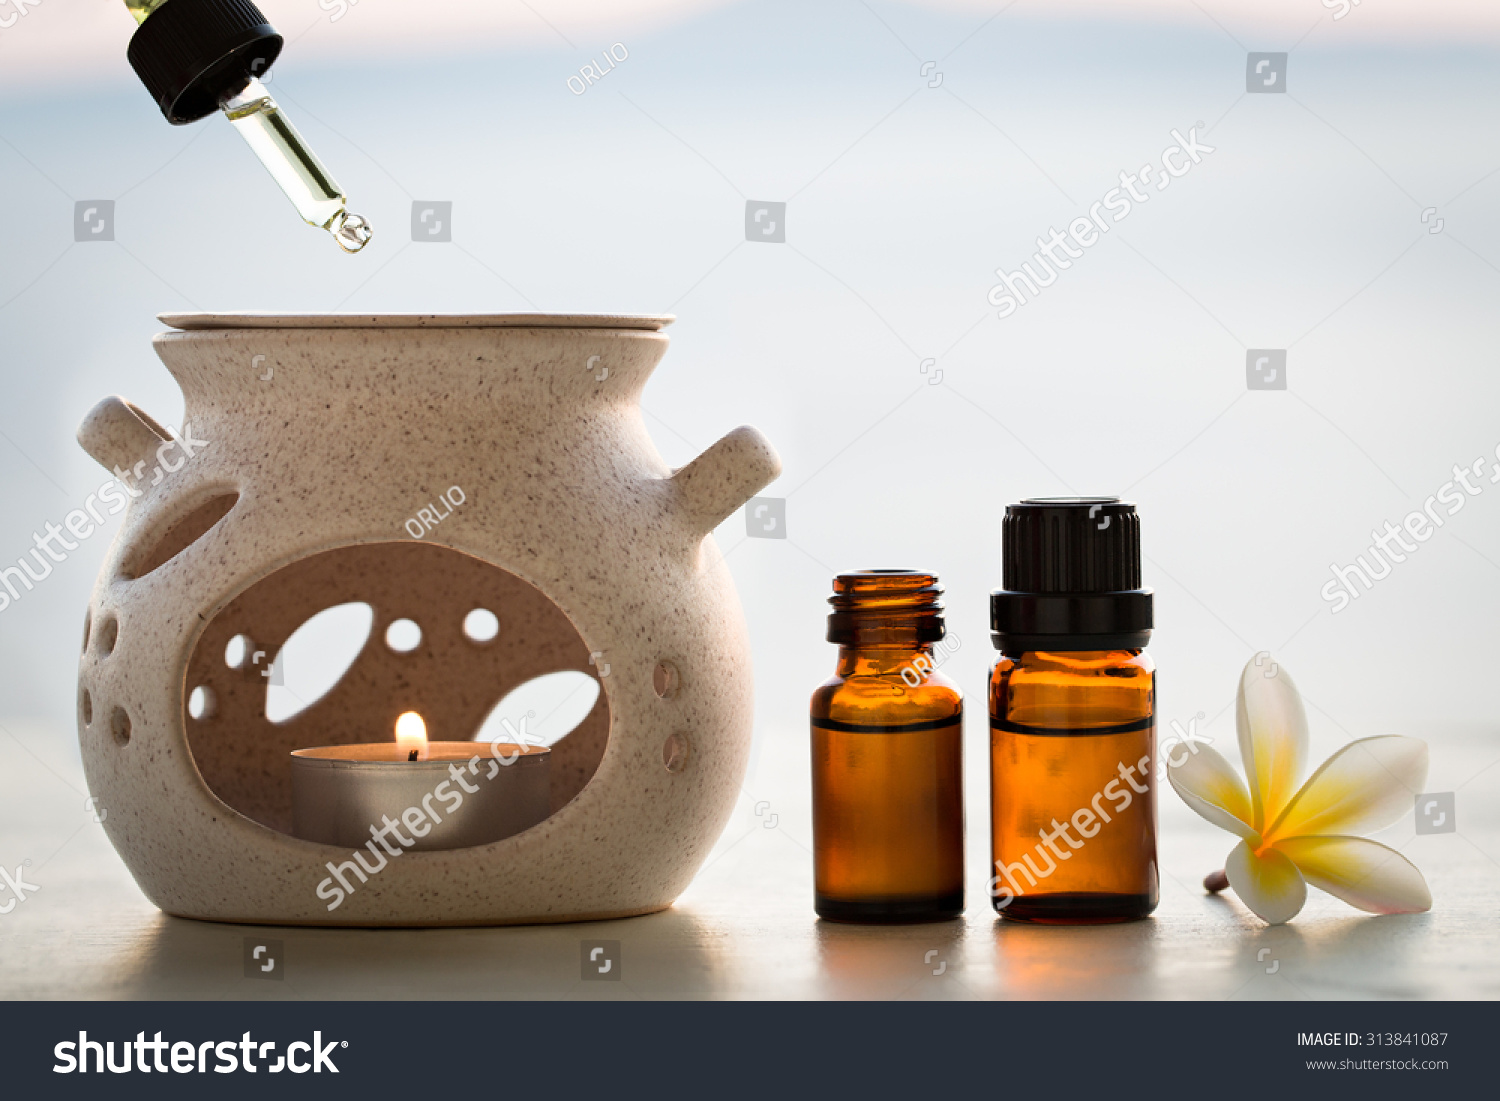 aroma lamp and aromatherapy essential oils stock photo. Black Bedroom Furniture Sets. Home Design Ideas